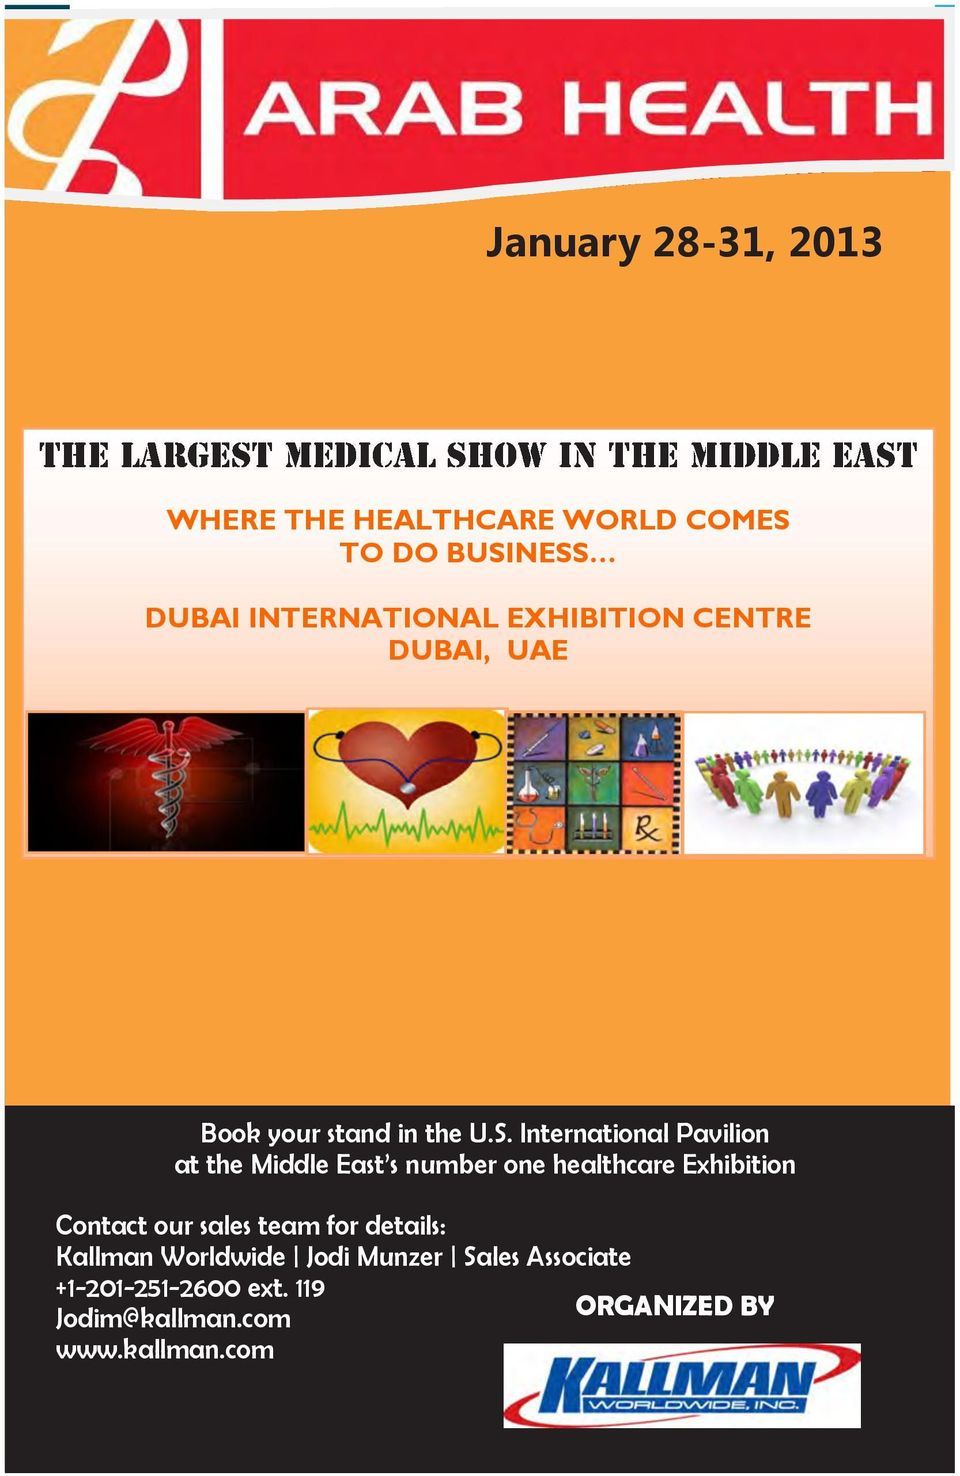 International Pavilion at the Middle East s number one healthcare Exhibition Contact our sales team for details: Kallman